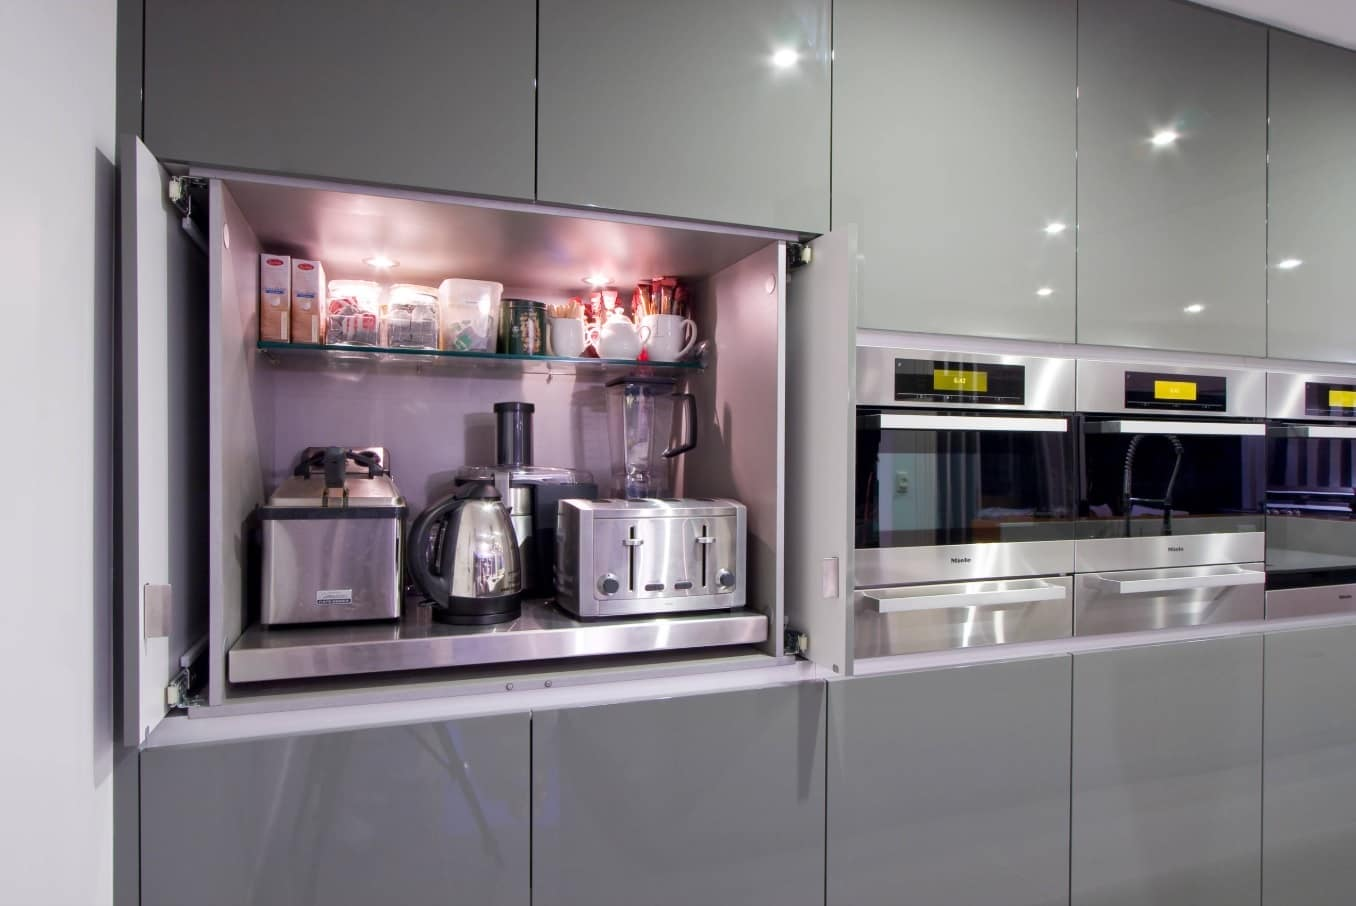 Enhance Home Interior with Stylish Appliances Without Breaking Bank. Modern designed kitchen facades in grey color with the recess for the appliances